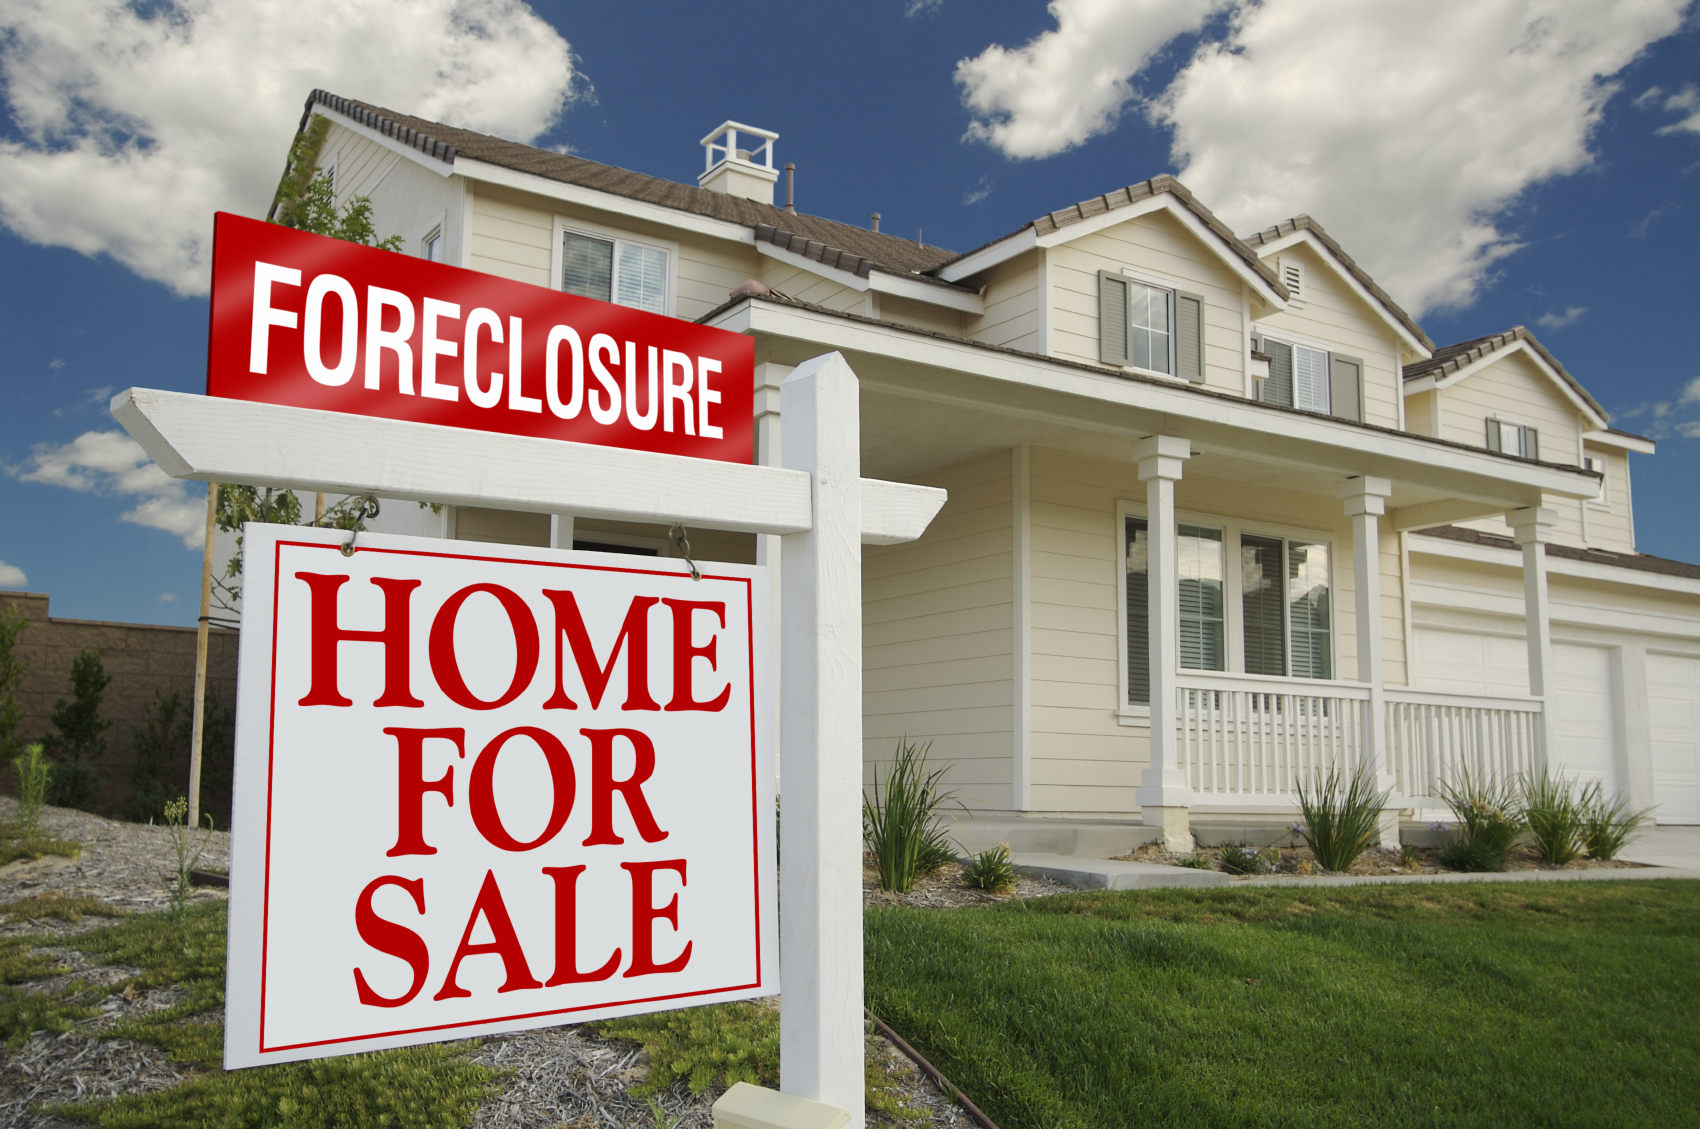 Bankruptcy might help you avoid foreclosure